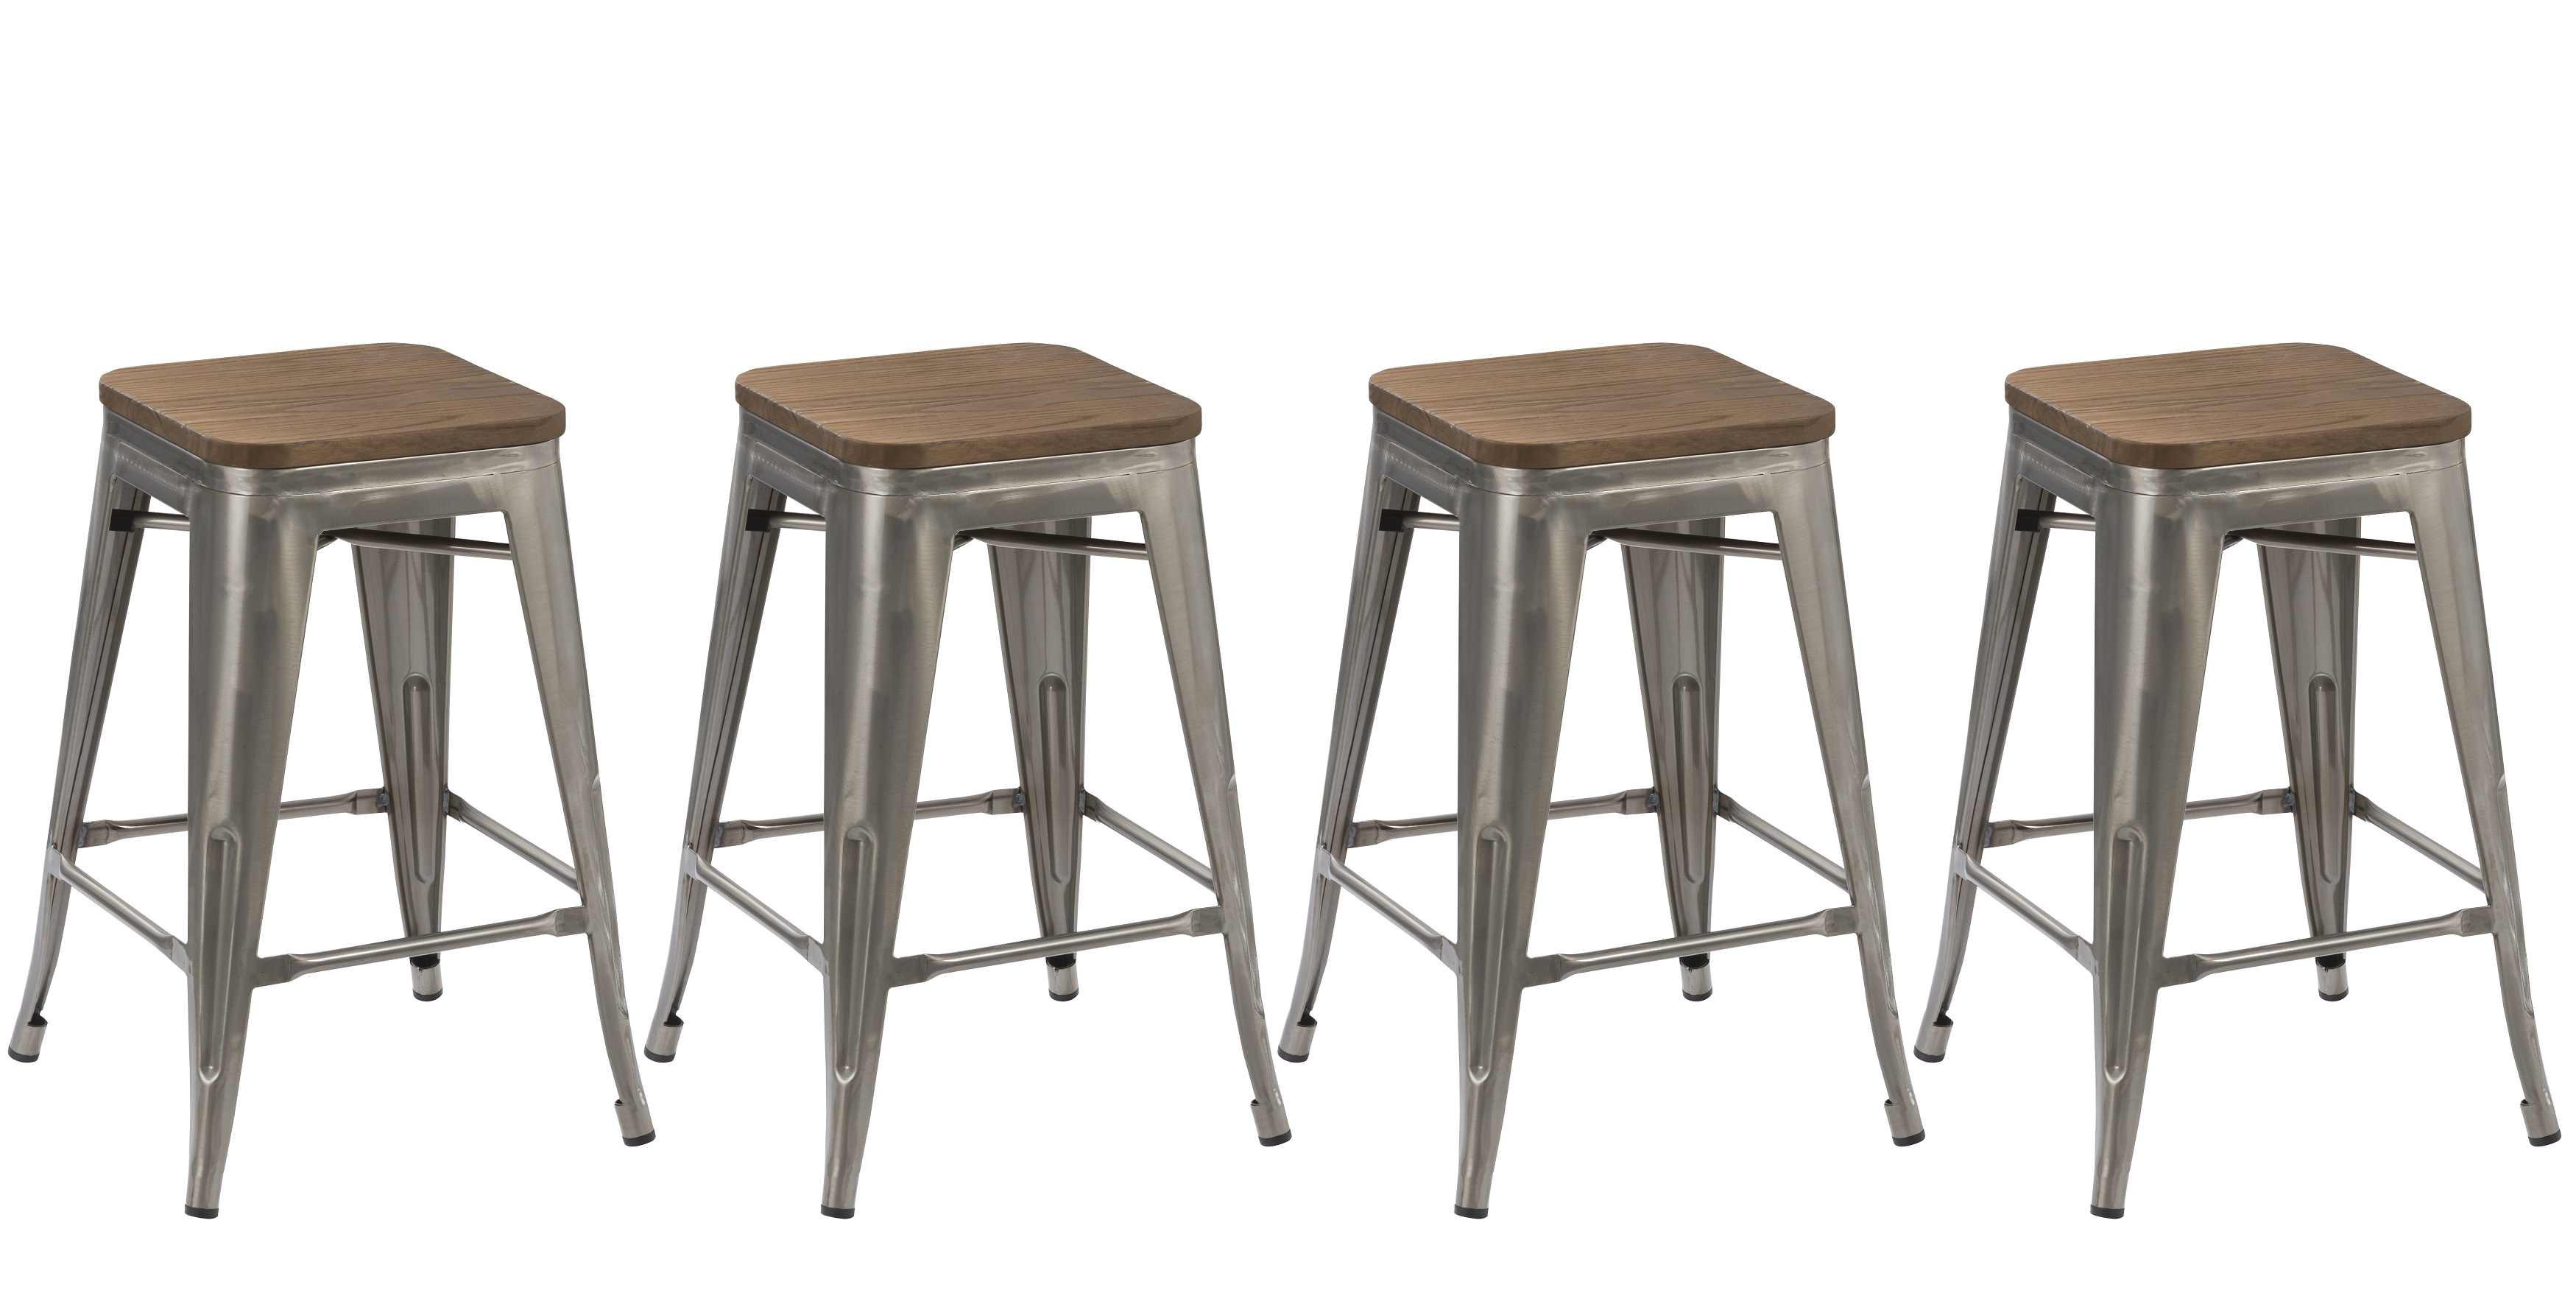 Rustic Modern Counter Stools Btexpert 24 Inch Industrial Stackable Tabouret Metal